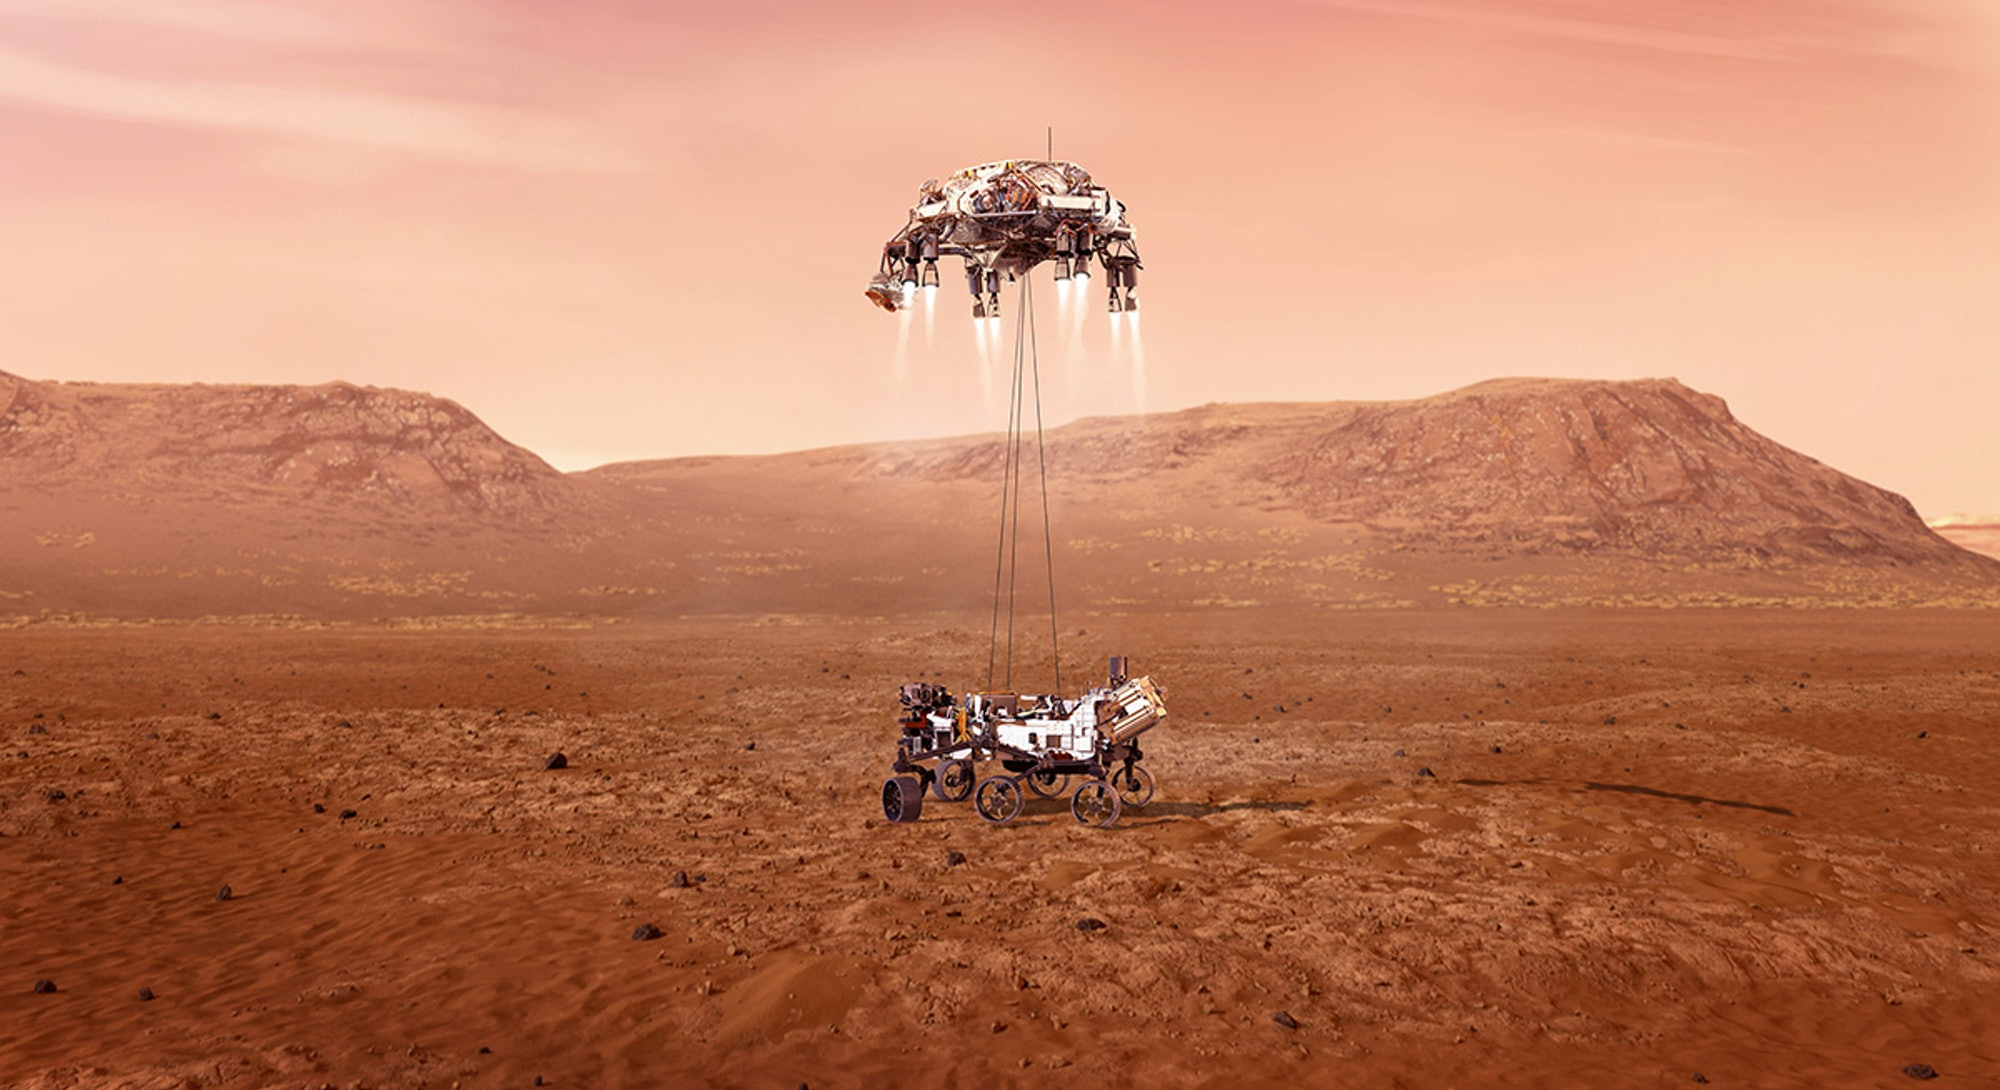 The Perseverance rover being lowered onto the Martian surface using wire cables.